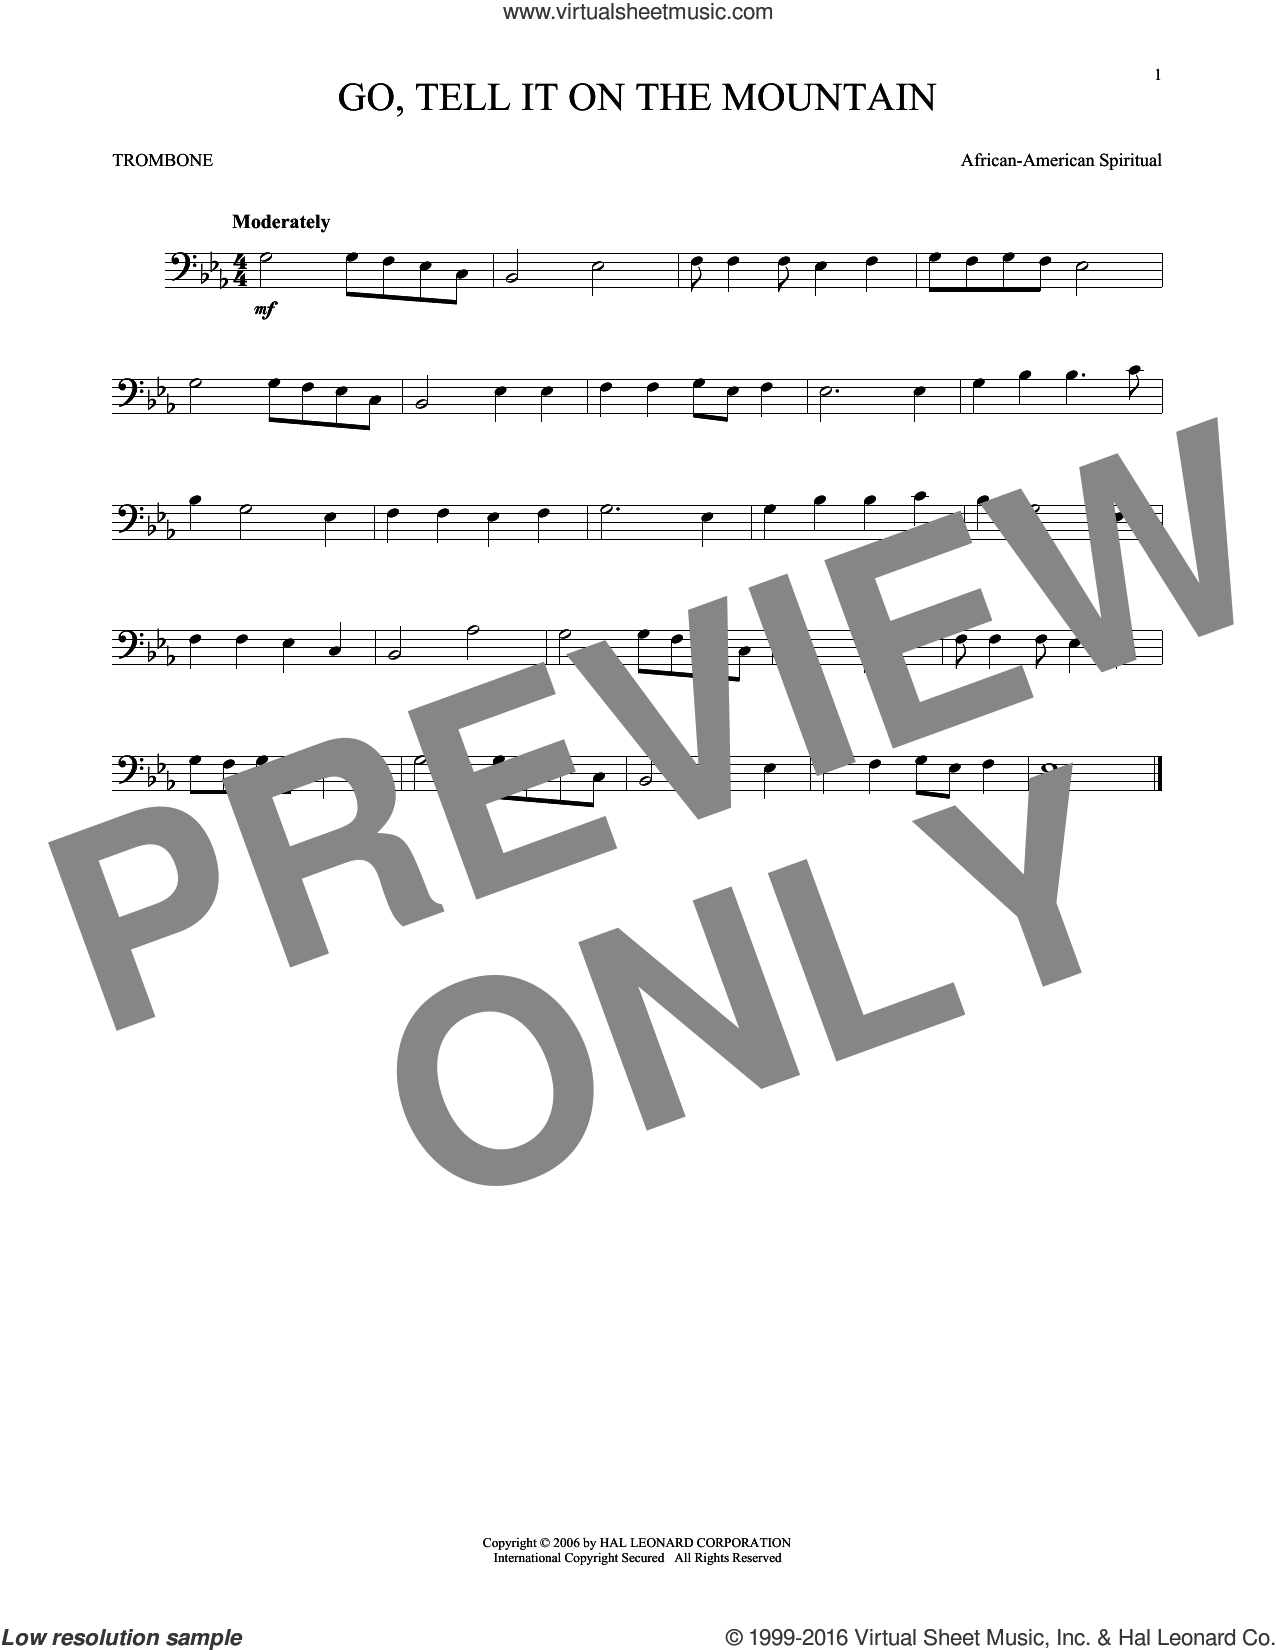 Go, Tell It On The Mountain sheet music for trombone solo by John W. Work, Jr. and Miscellaneous, intermediate skill level